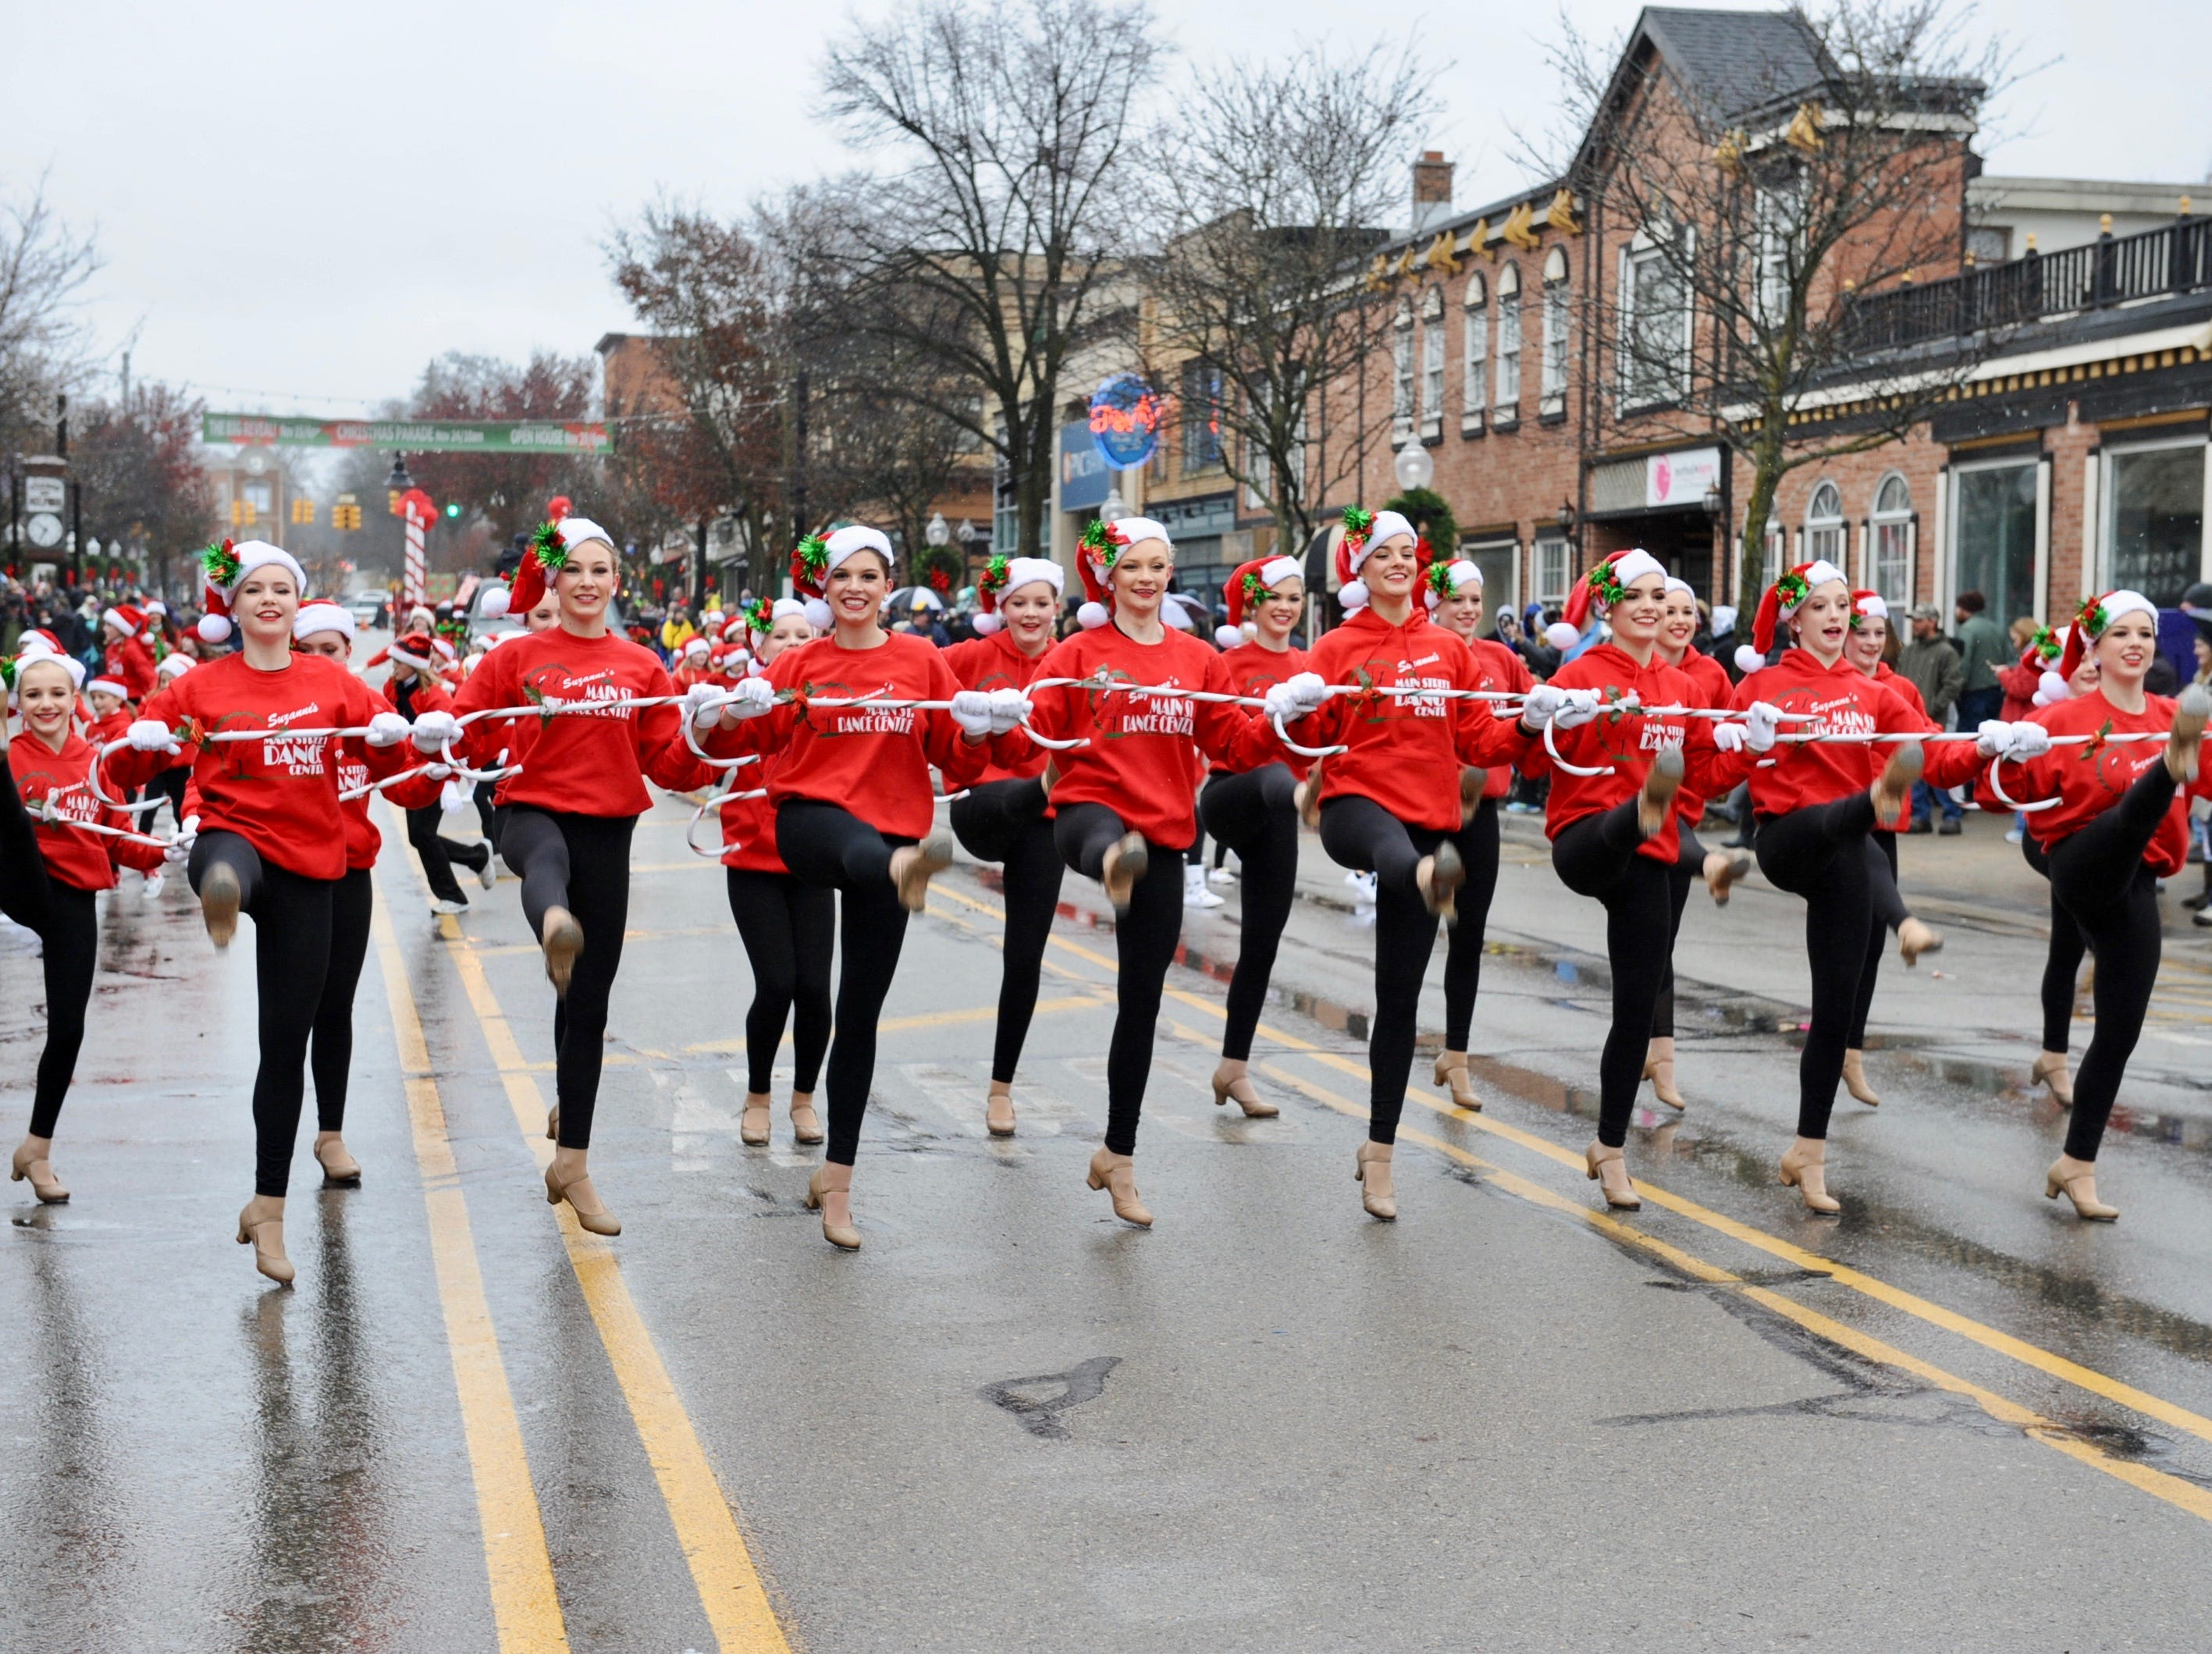 The ladies from Main Street Dance Centre perform during the Milford Christmas parade.